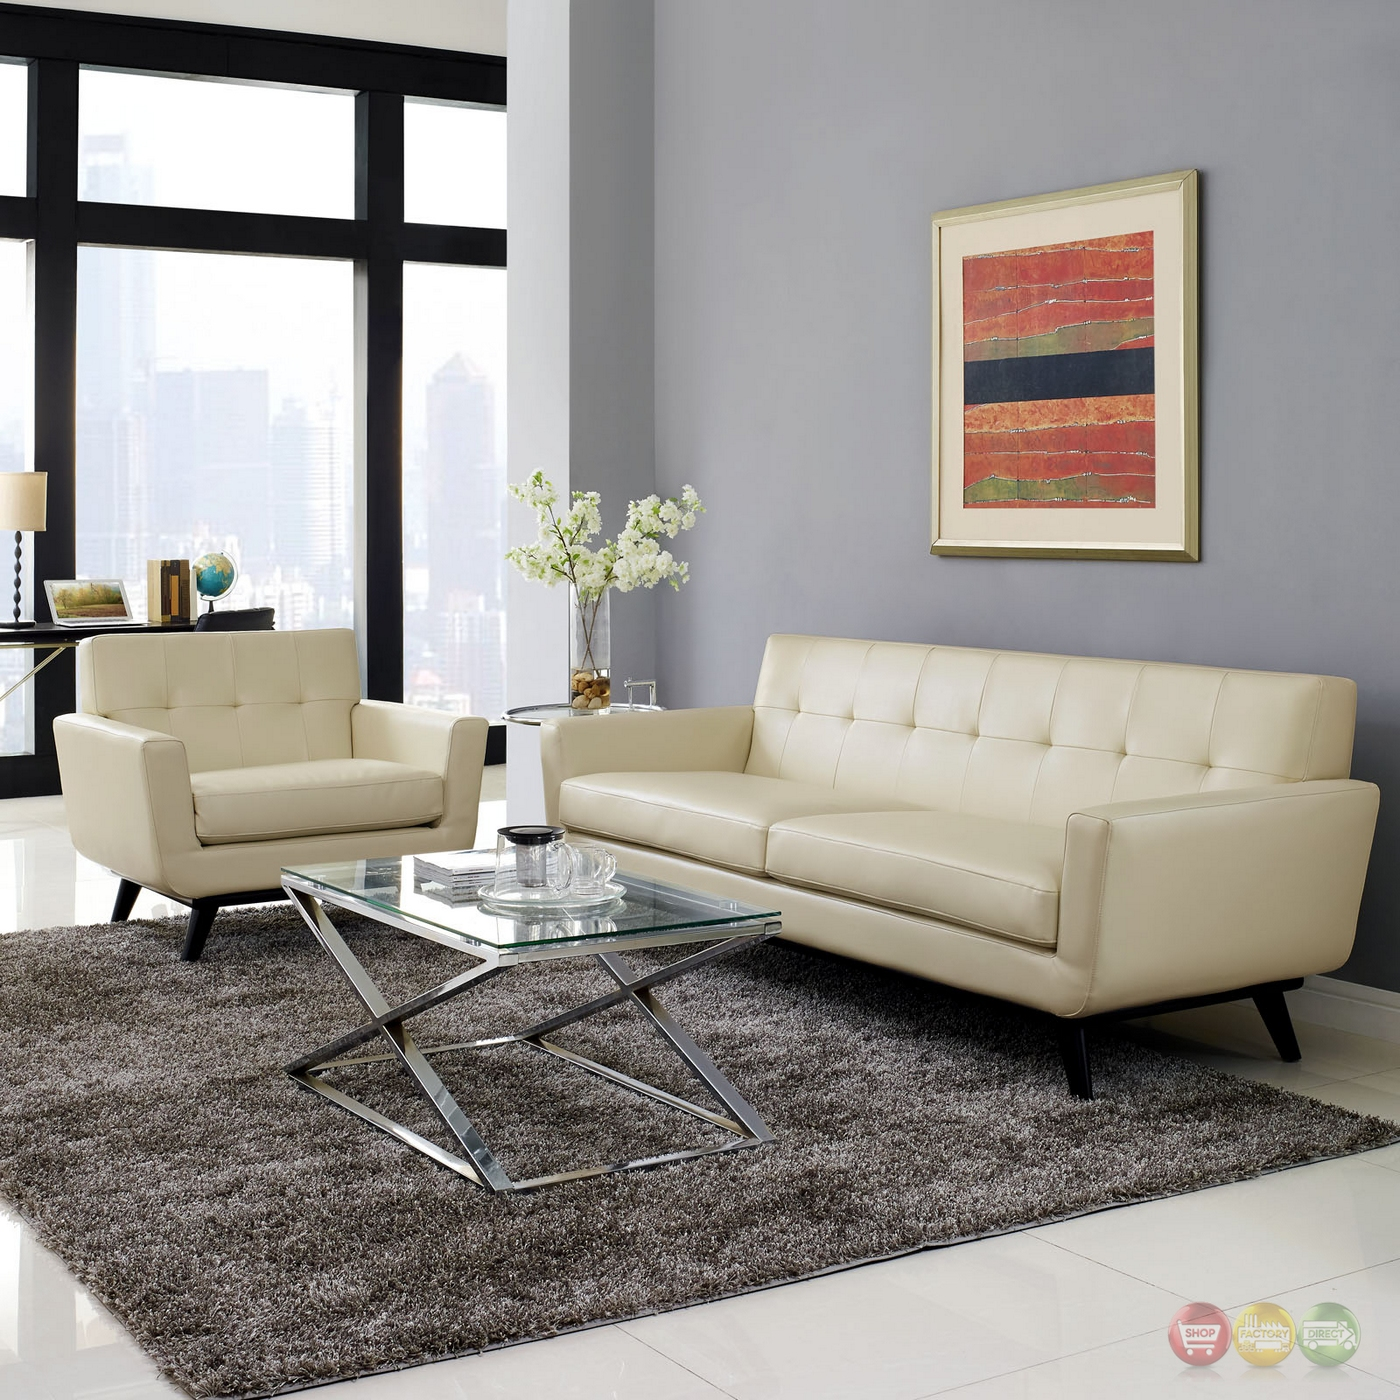 Living Room Sets: Engage Contemporary 2pc Button-tufted Leather Living Room